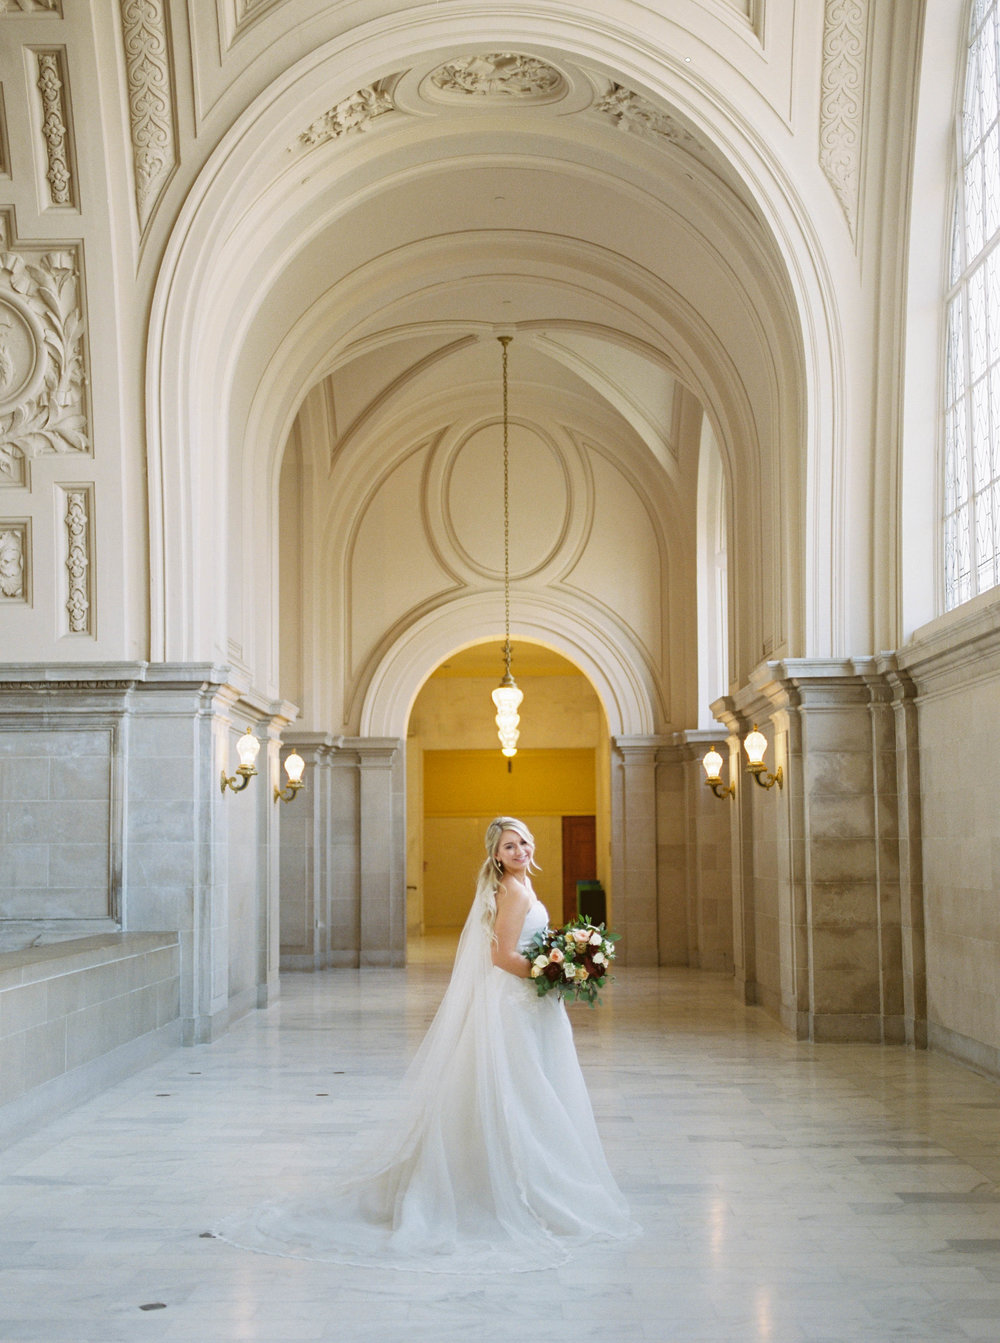 DennisRoyCoronel_Photography_SanFranciscoCityHall_Wedding-18.jpg